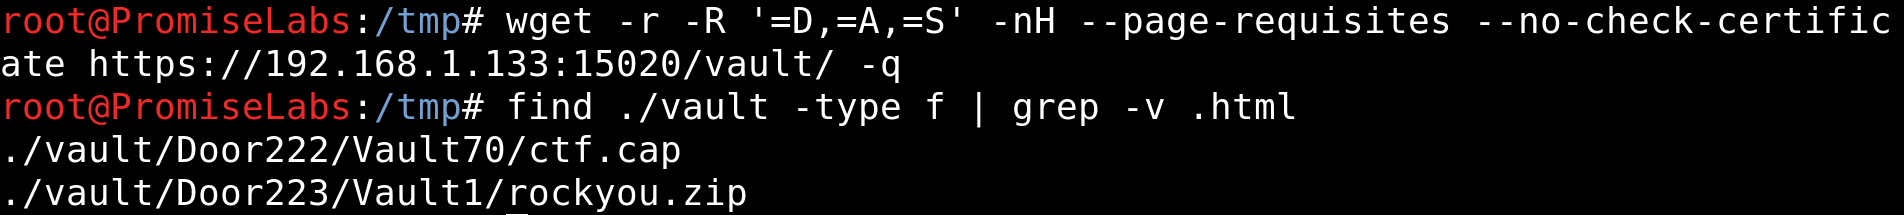 wget -r -R '=D,=A,=S' -nH --page-requisites --no-check-certificate https://192.168.1.133:15020/vault/ -q; find ./vault -type f | grep -v .html